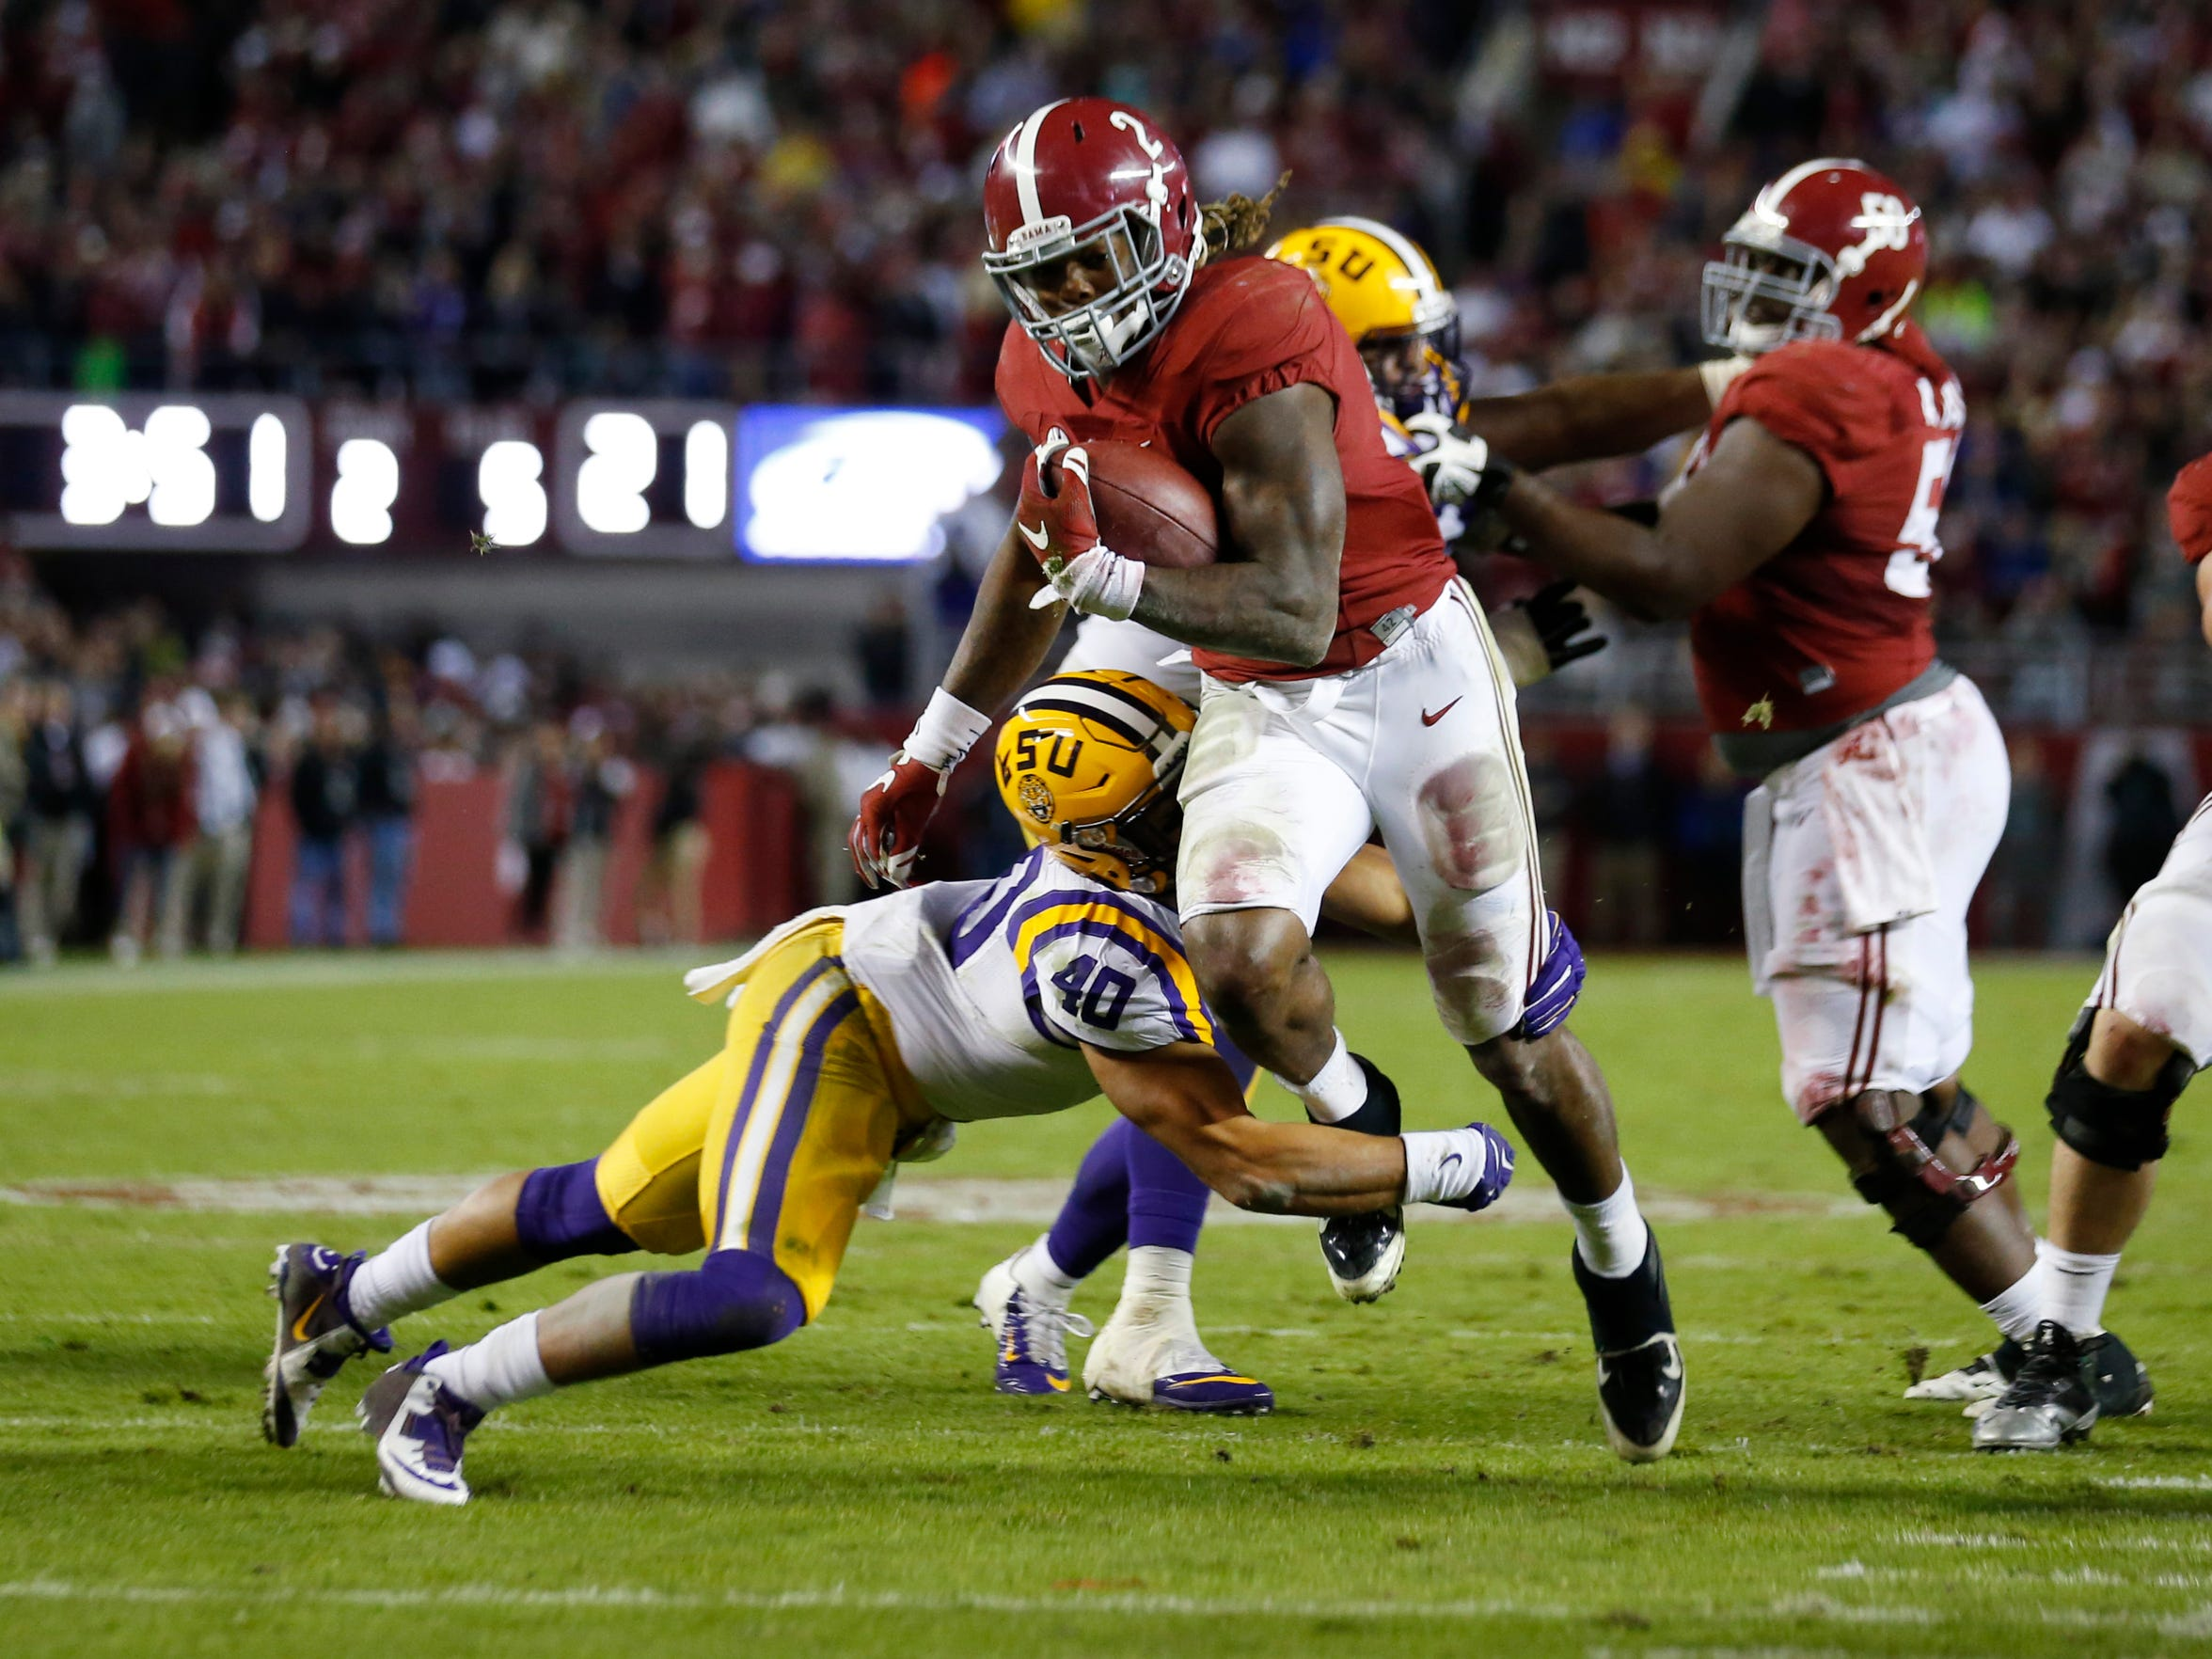 Alabama running back Derrick Henry is hit by LSU linebacker